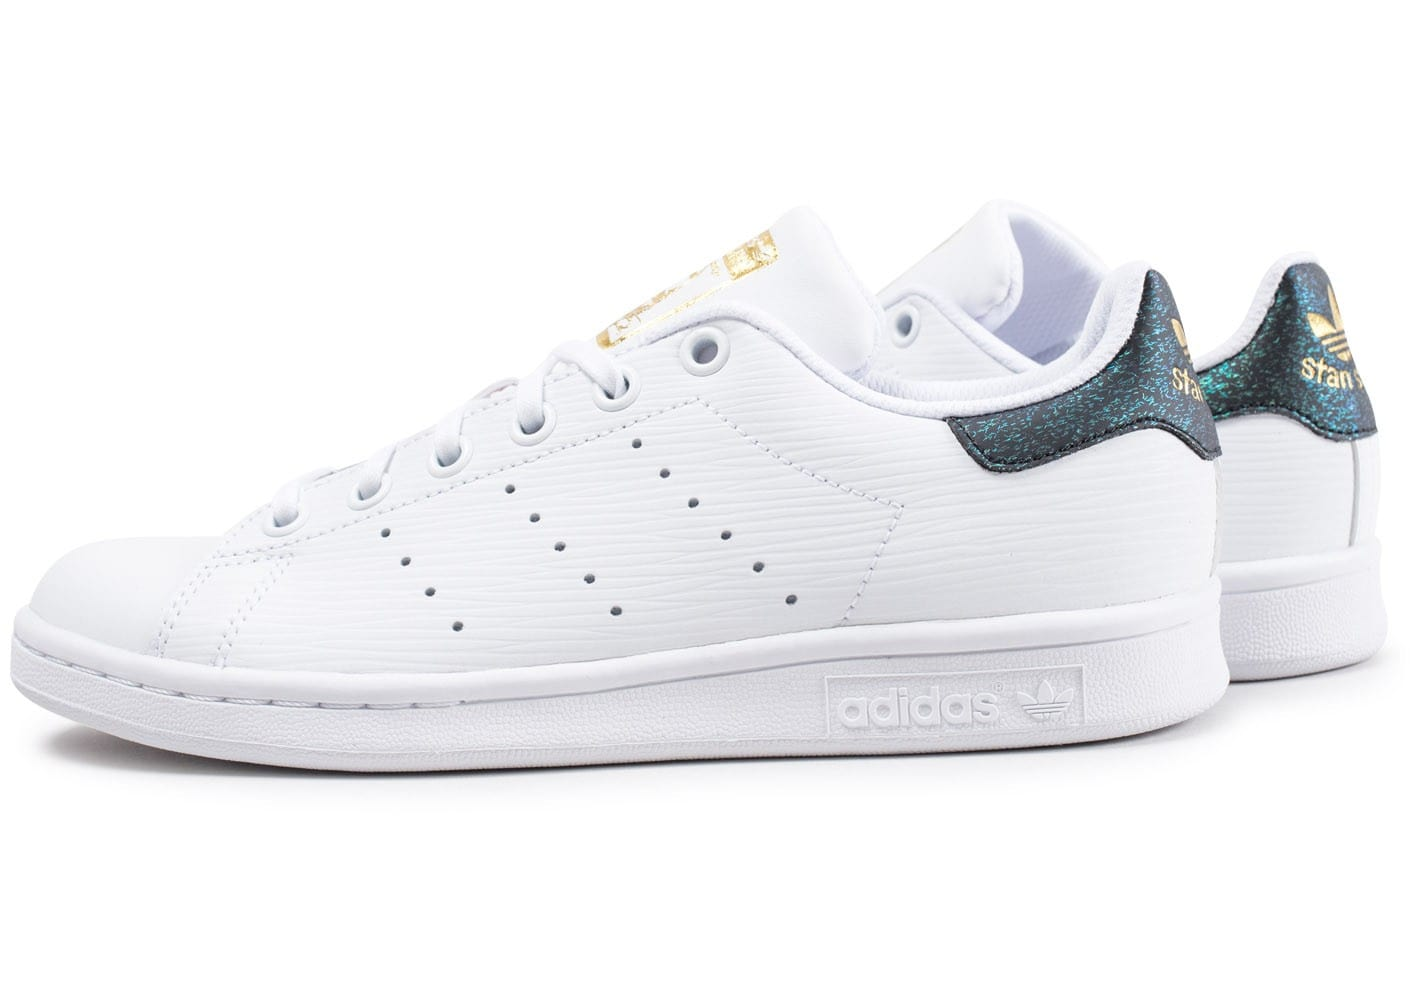 stan smith junior soldes Off 63% - www.bashhguidelines.org